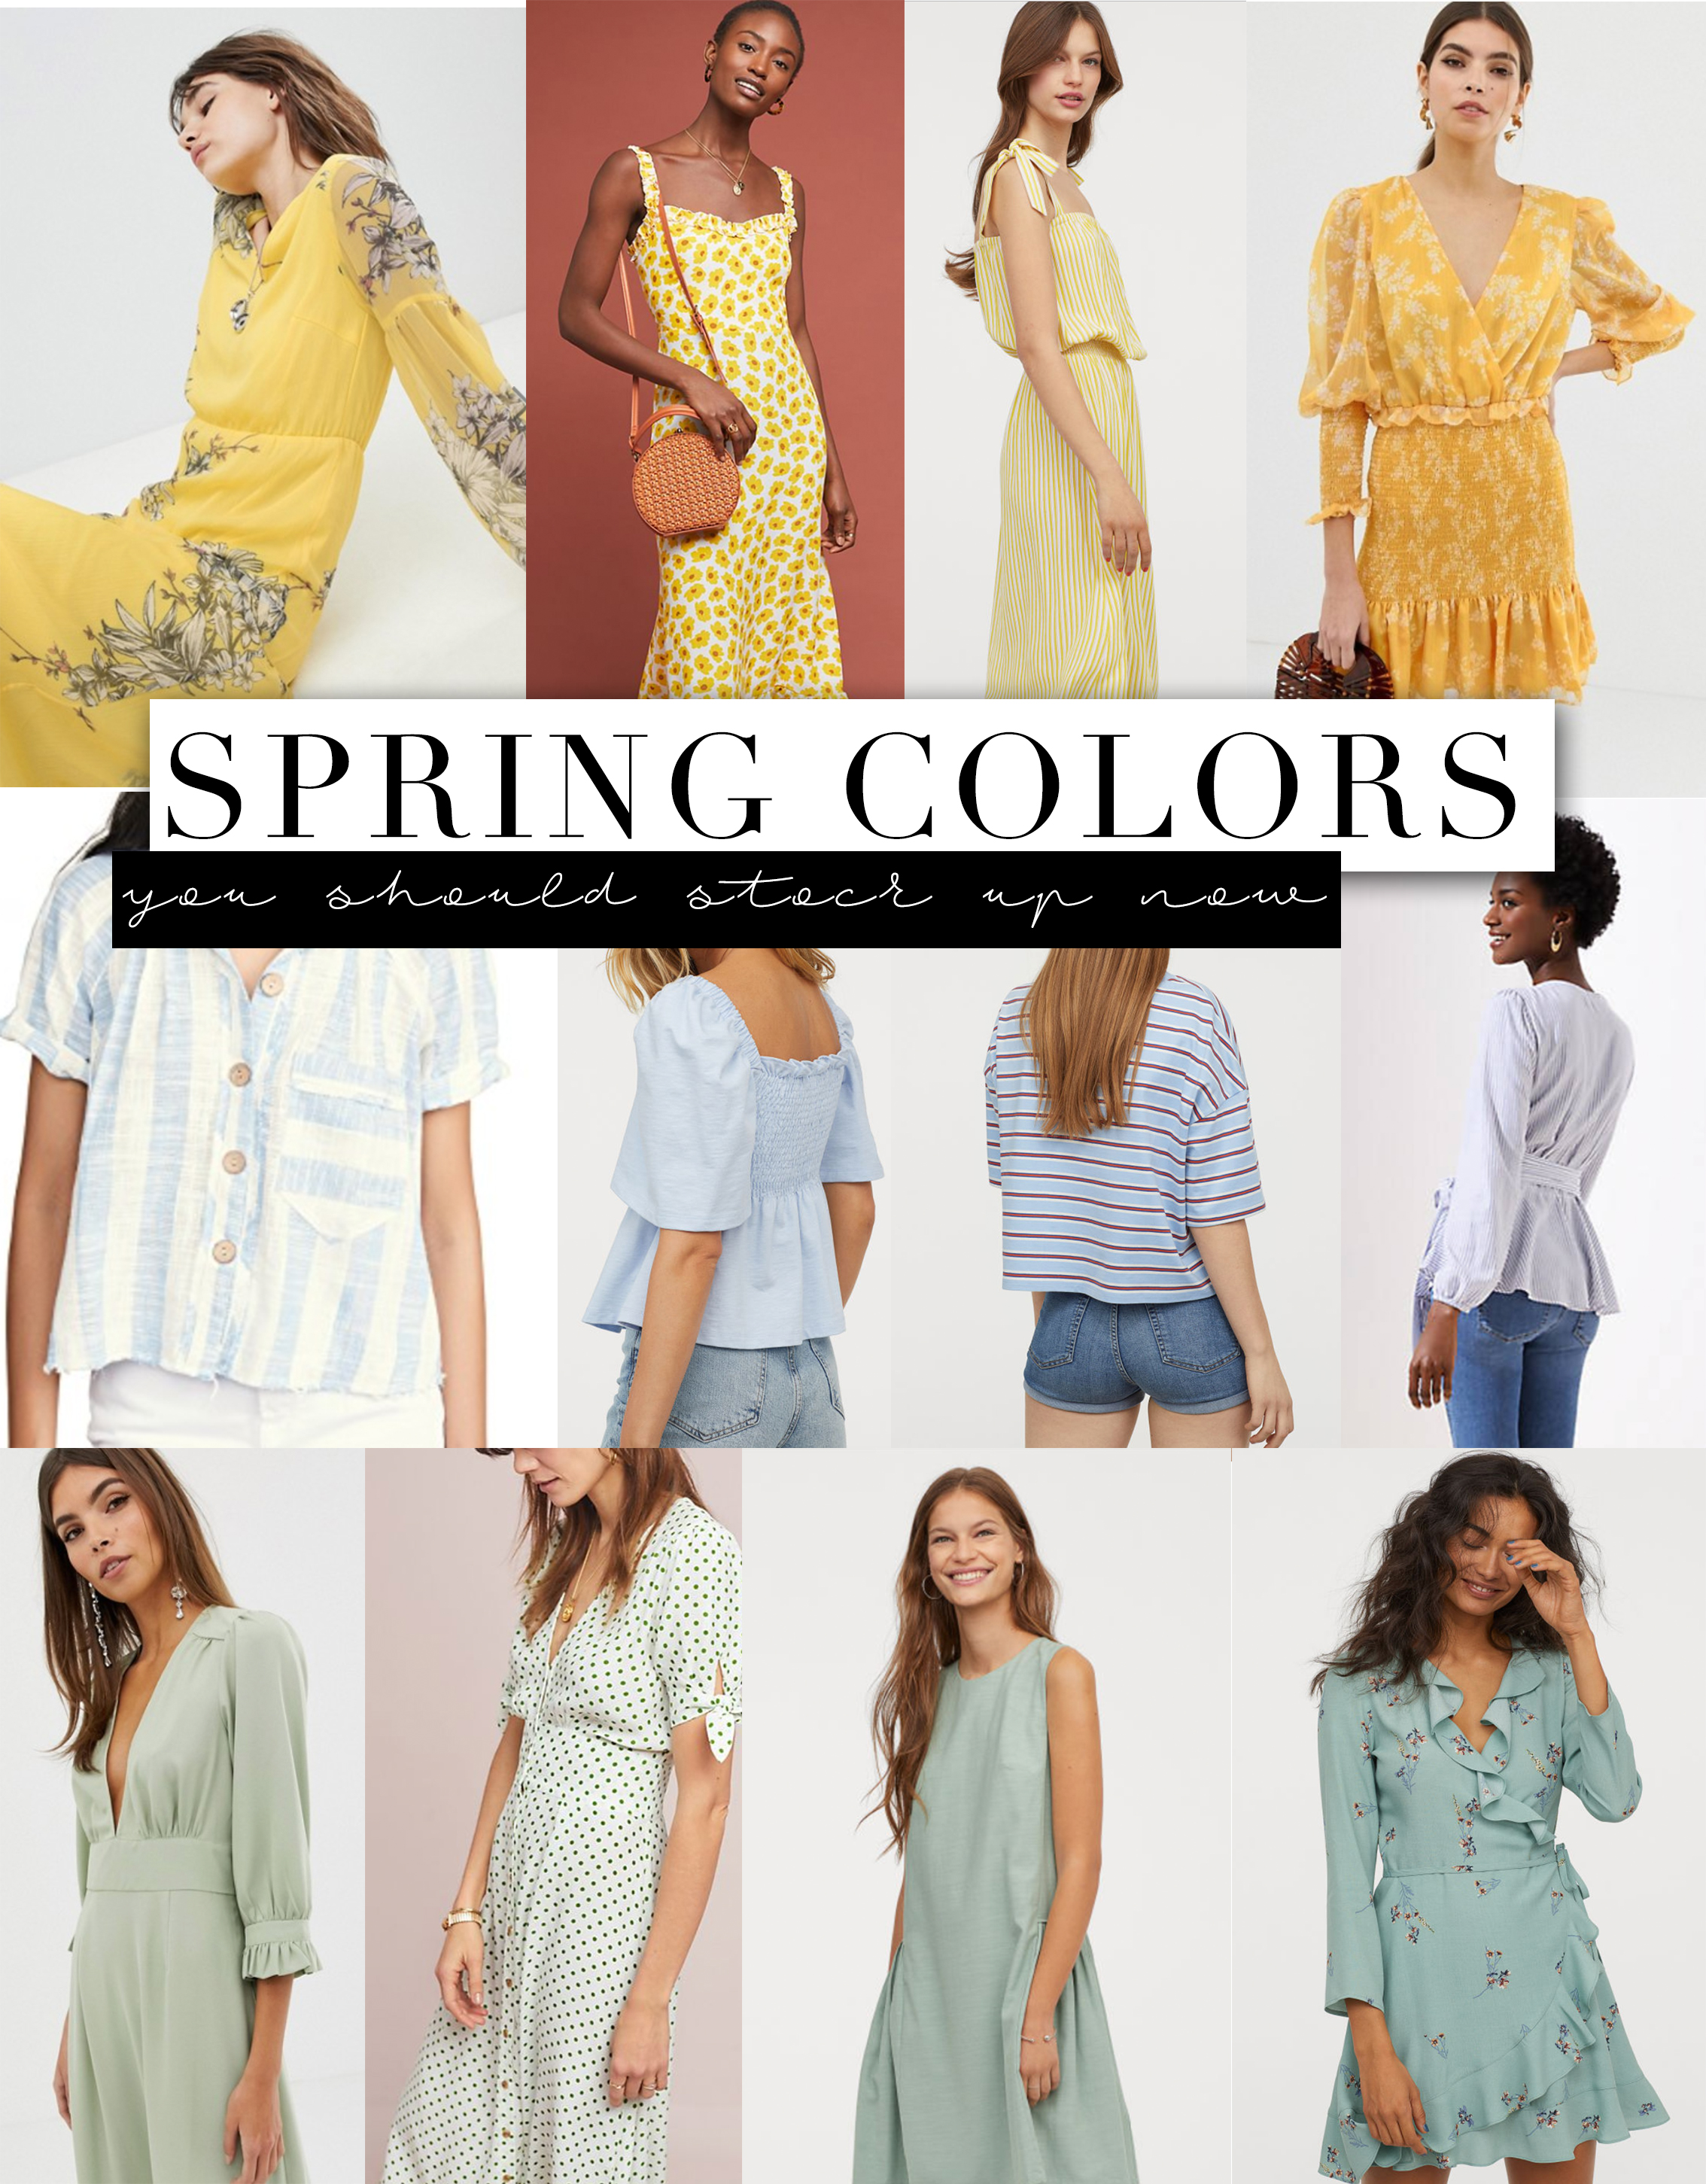 fizz-fade-spring-colors-stock-up-now.jpg